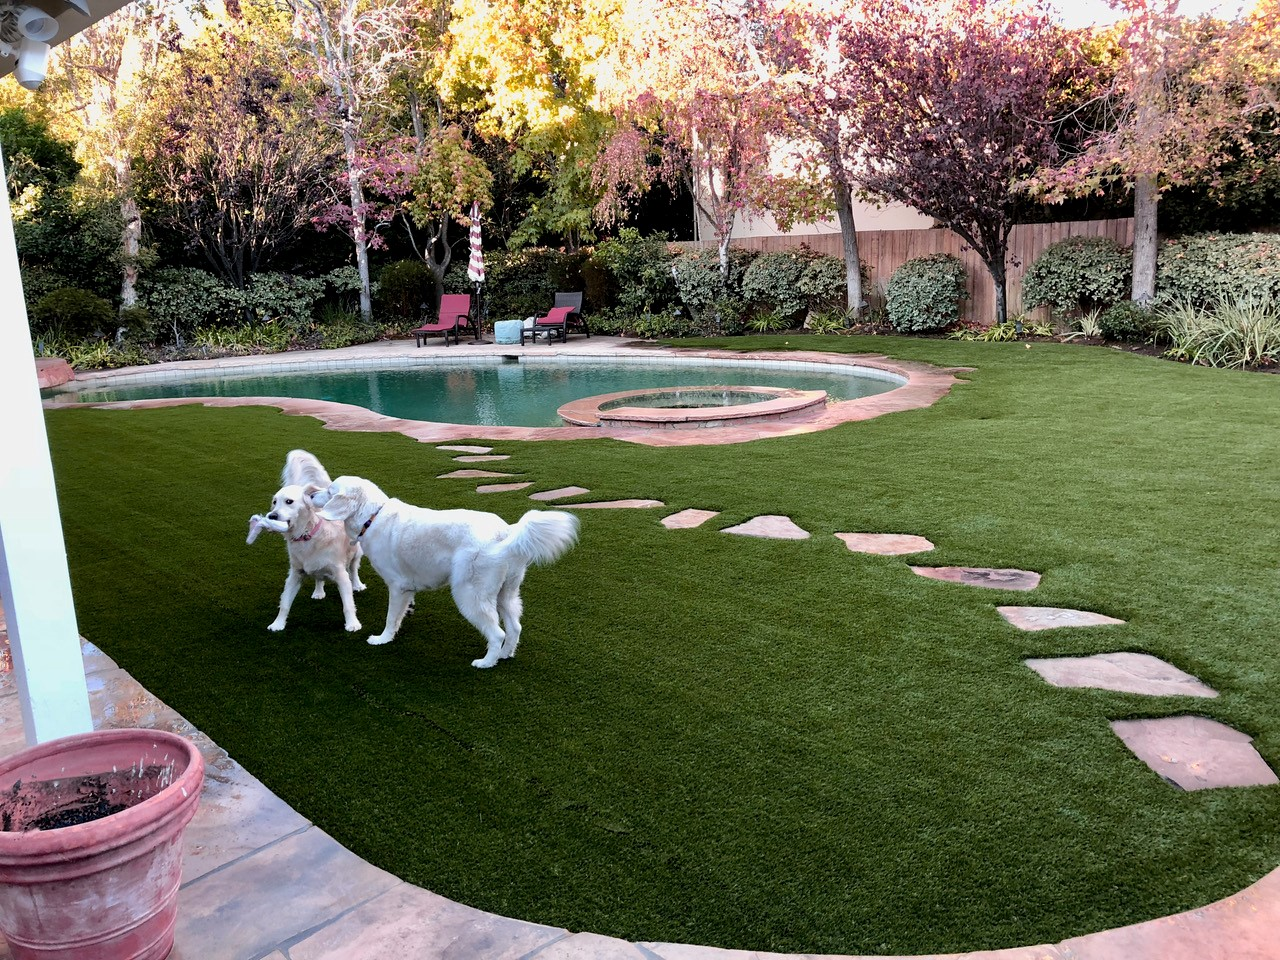 Dog on artificial turf by pool